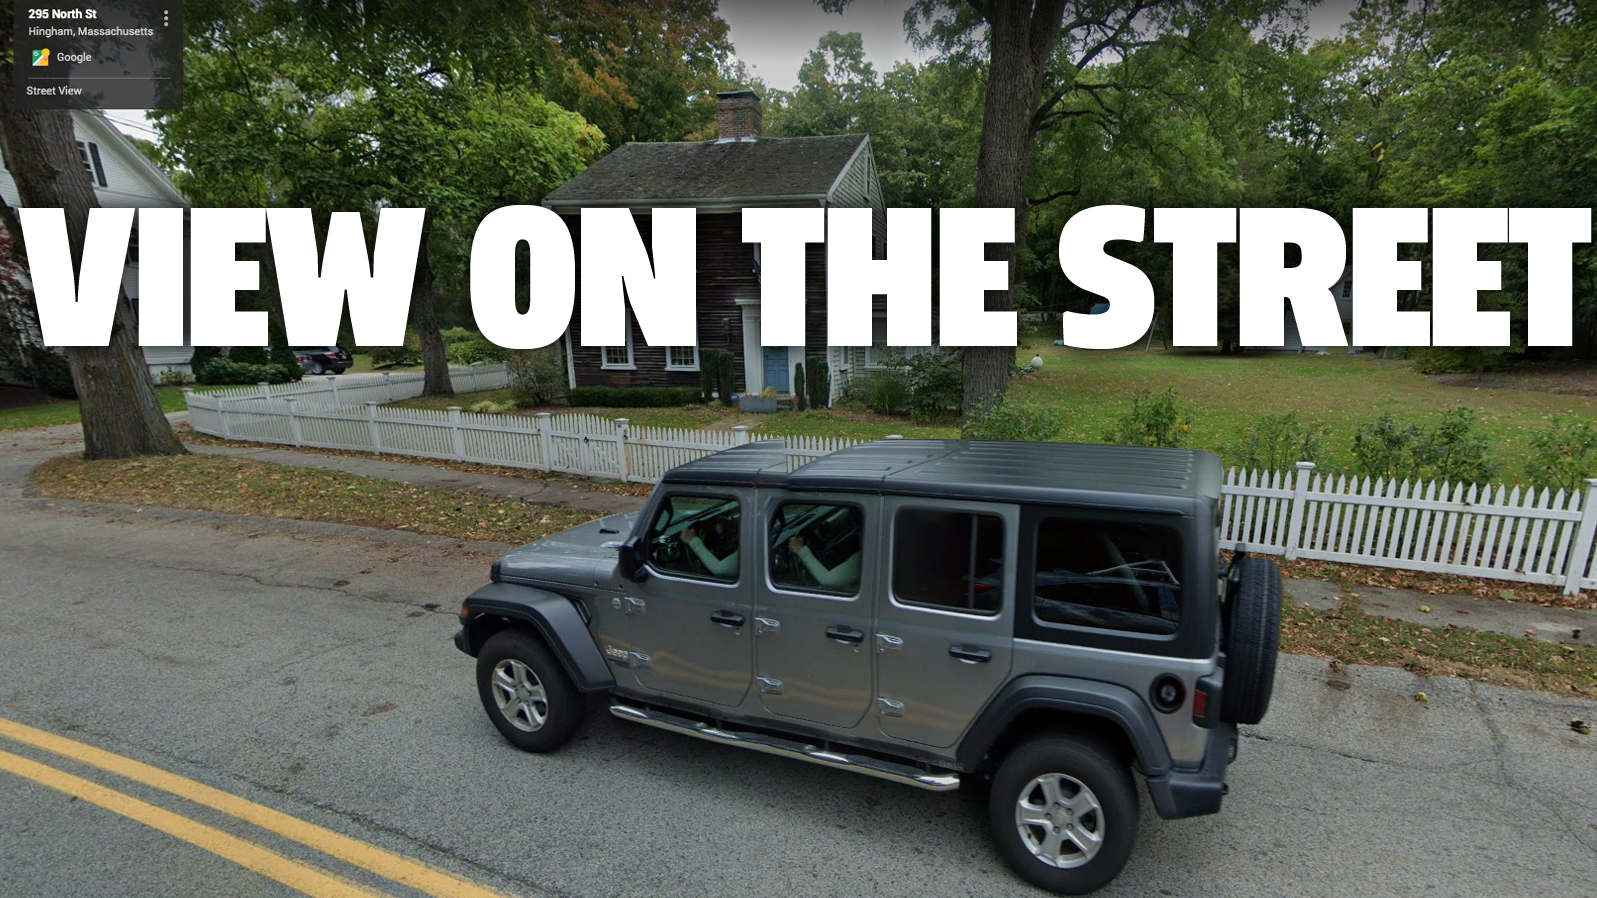 Google Street View AI Develops Six-Door Jeep Wrangler